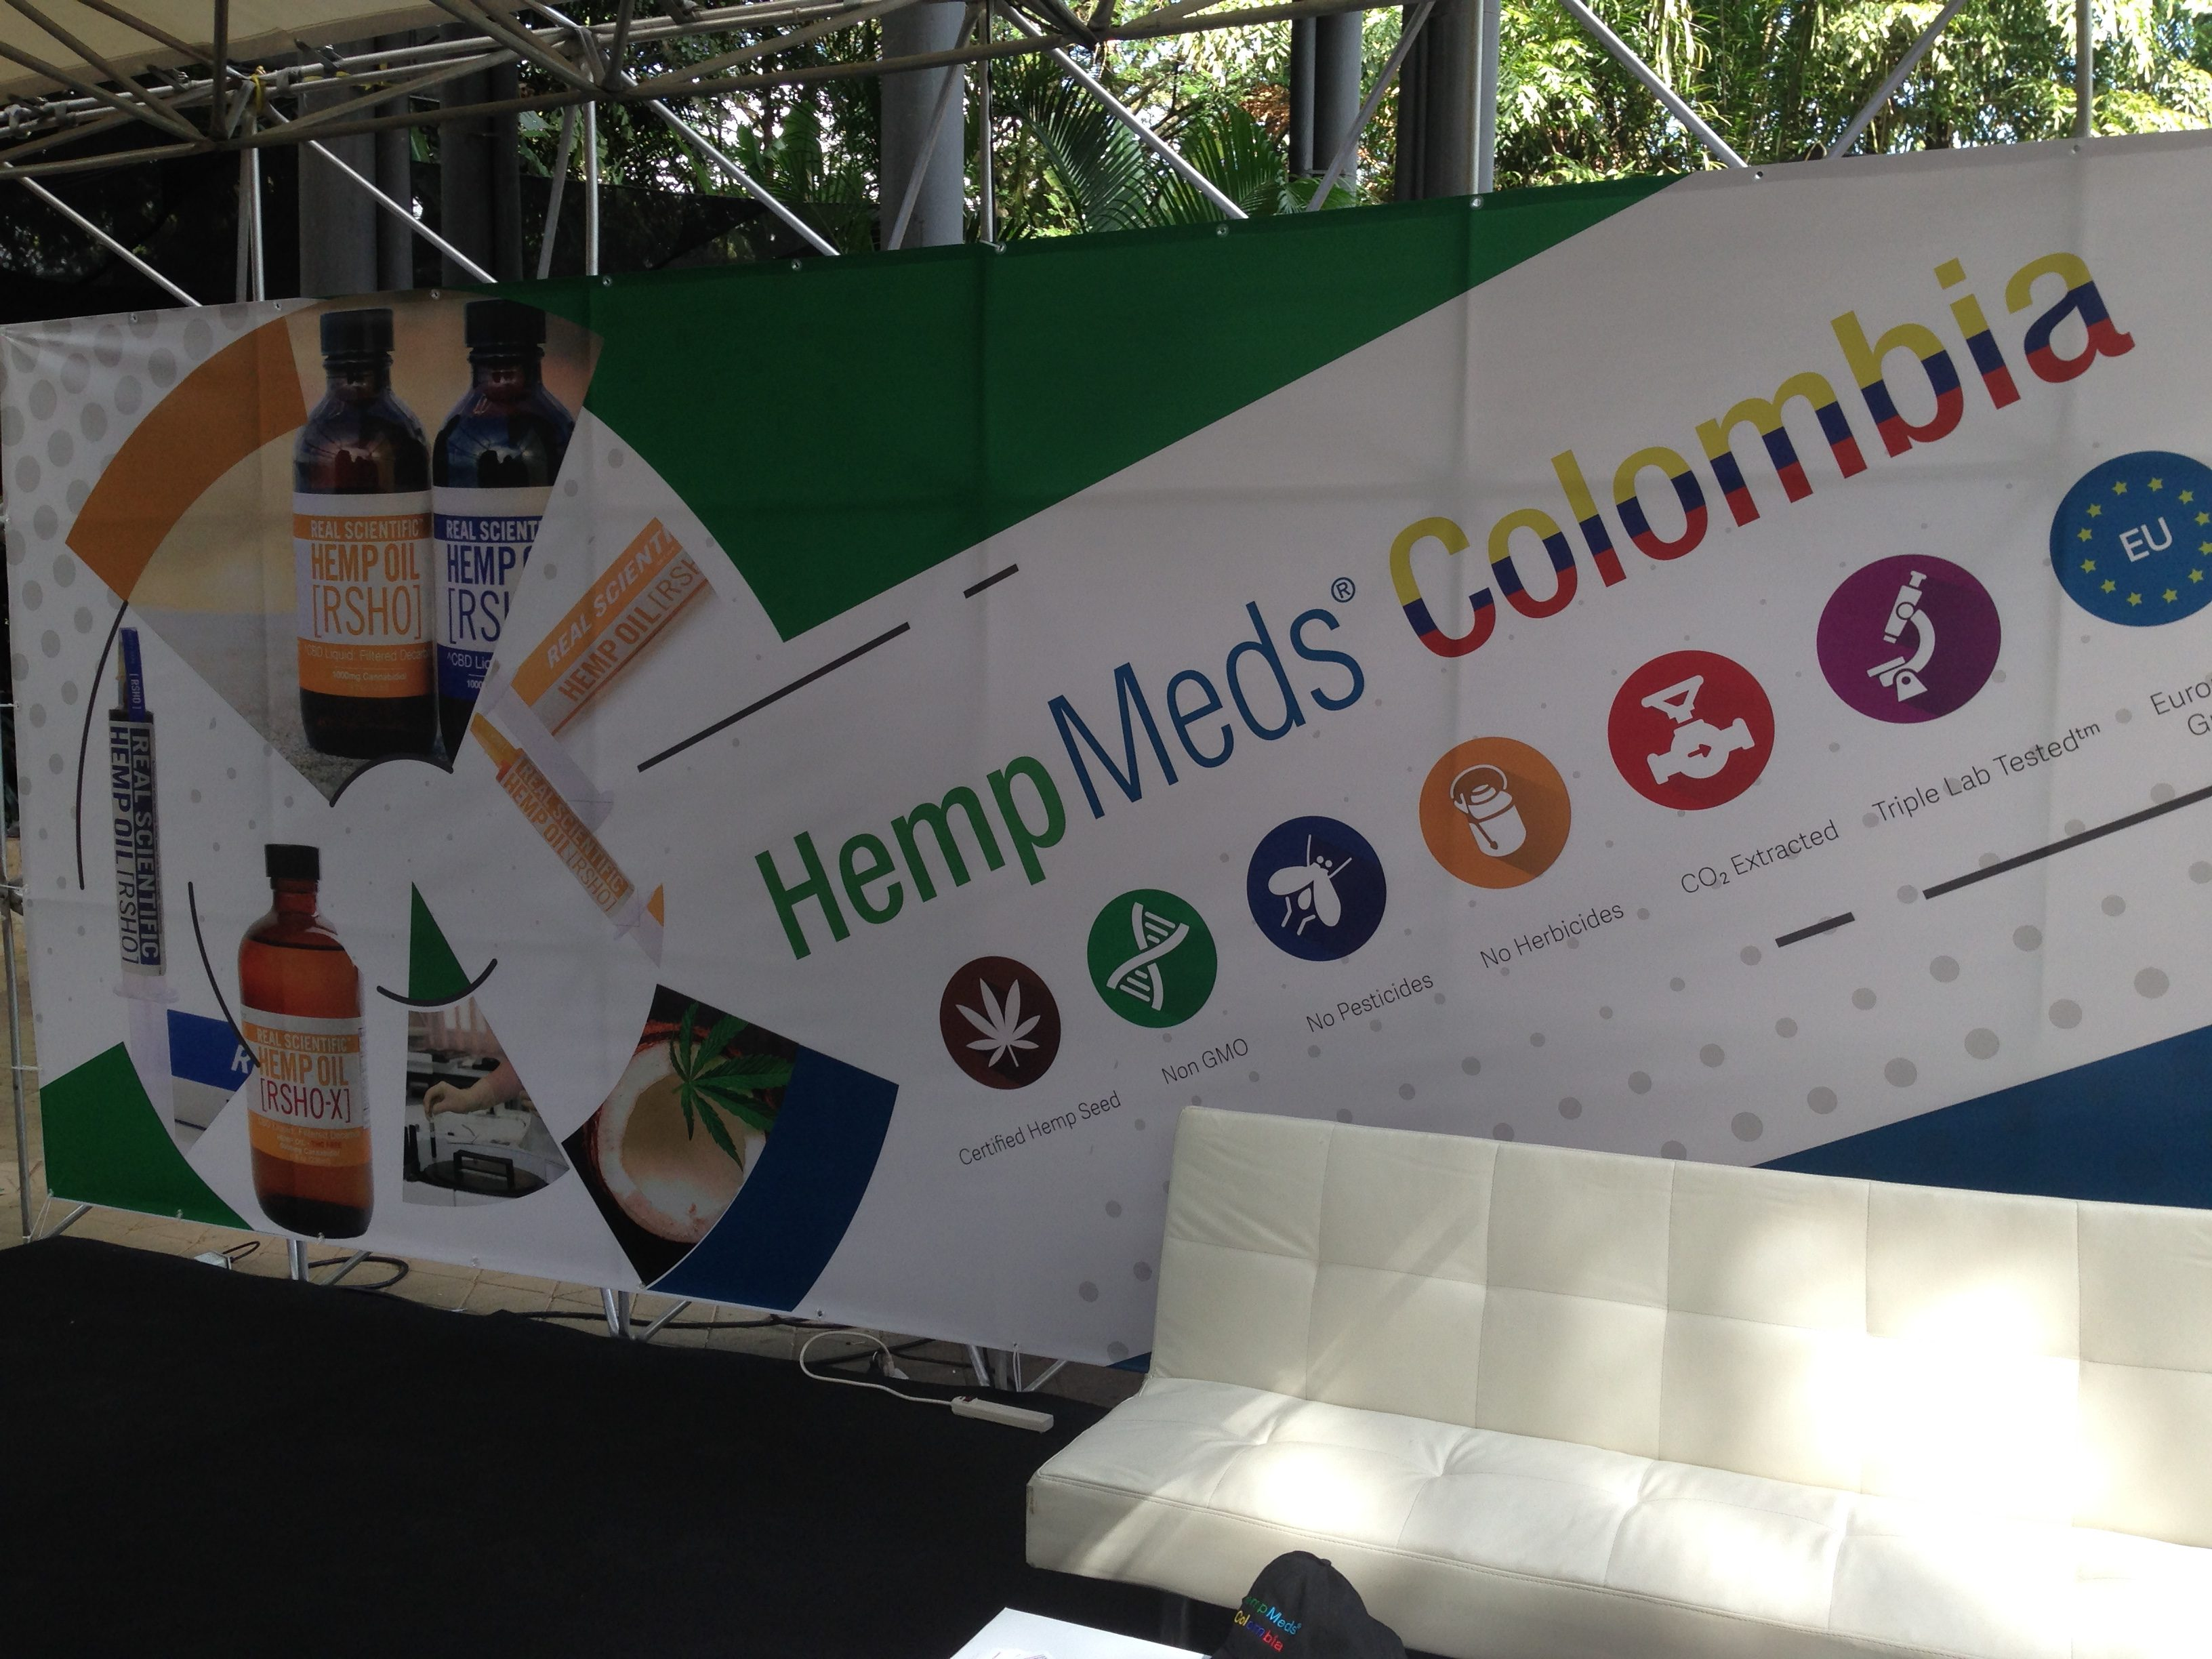 hempmeds colombia expo booth